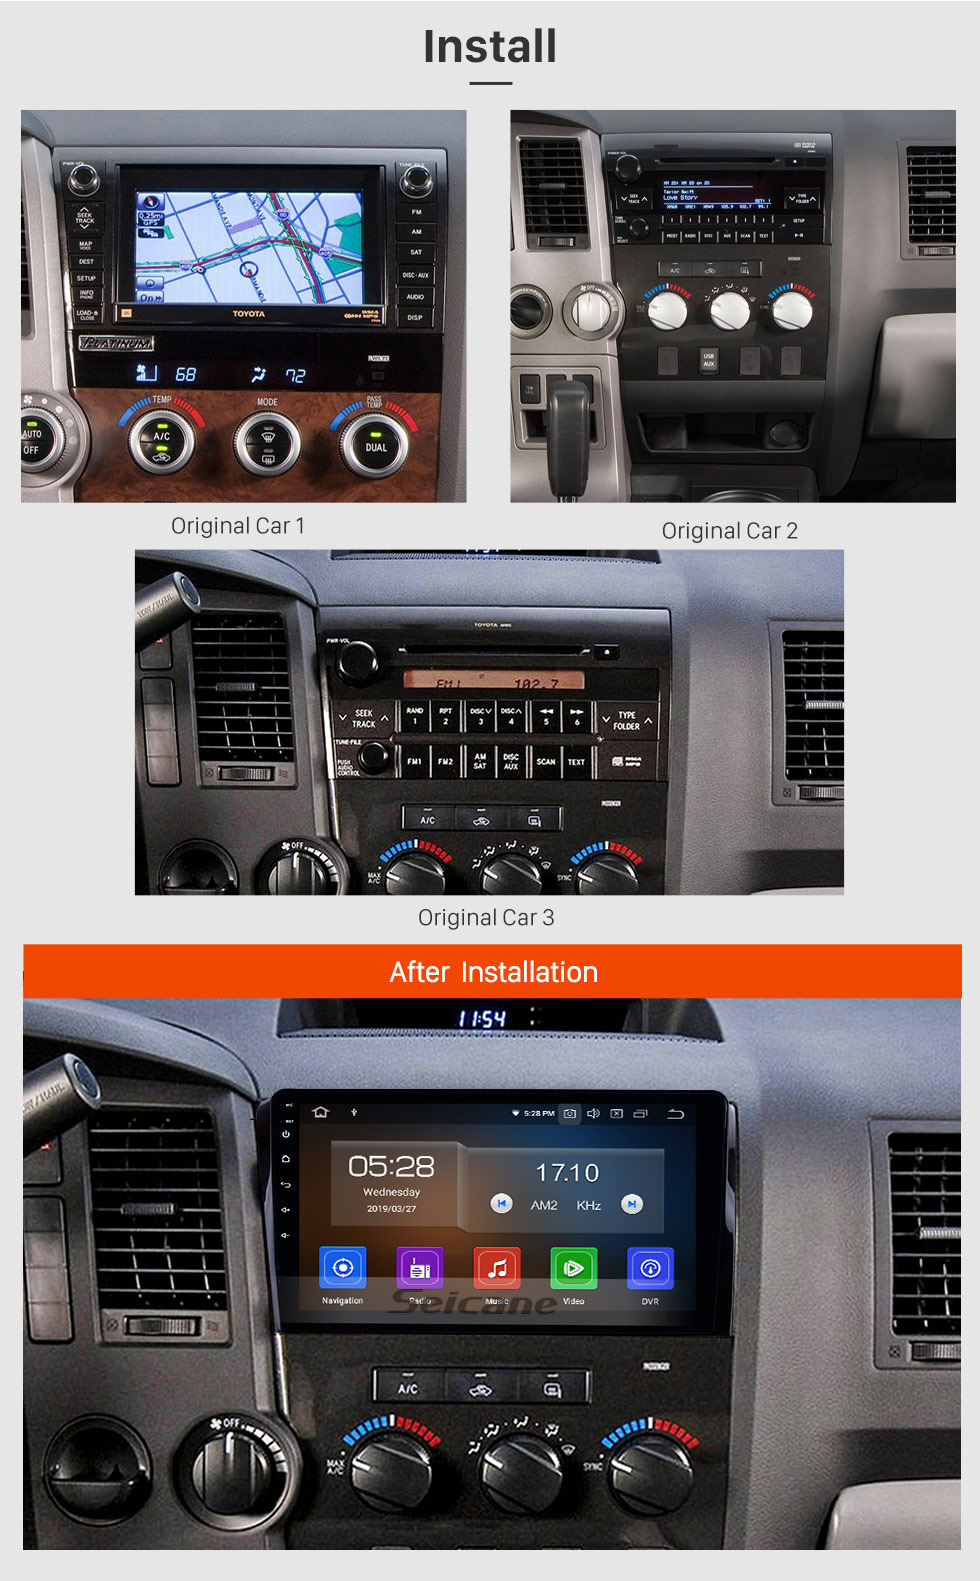 Seicane 10.1 inch Android 9.0 2006-2014 Toyota Sequoia GPS Navigation system Support Radio IPS Full Screen 3G WiFi Bluetooth OBD2 Steering Wheel Control